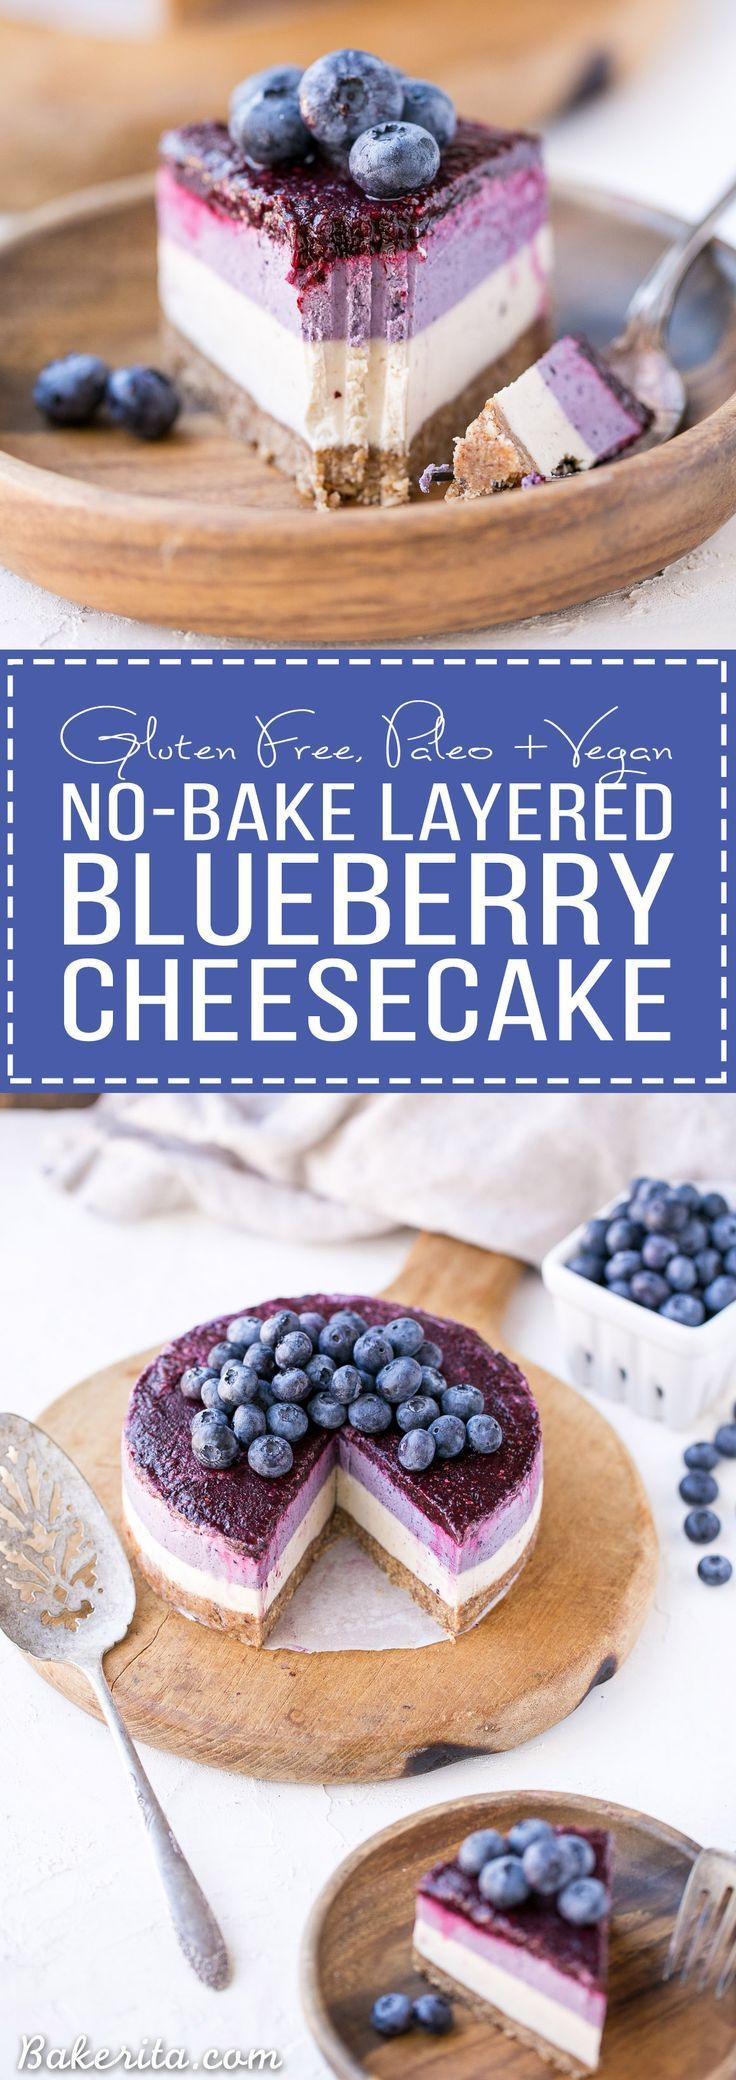 This No-Bake Layered Blueberry Cheesecake is a beautiful and easy-to-make Paleo-friendly + vegan cheesecake made with soaked cashews! The cheesecake layers are lusciously smooth and creamy with a tart